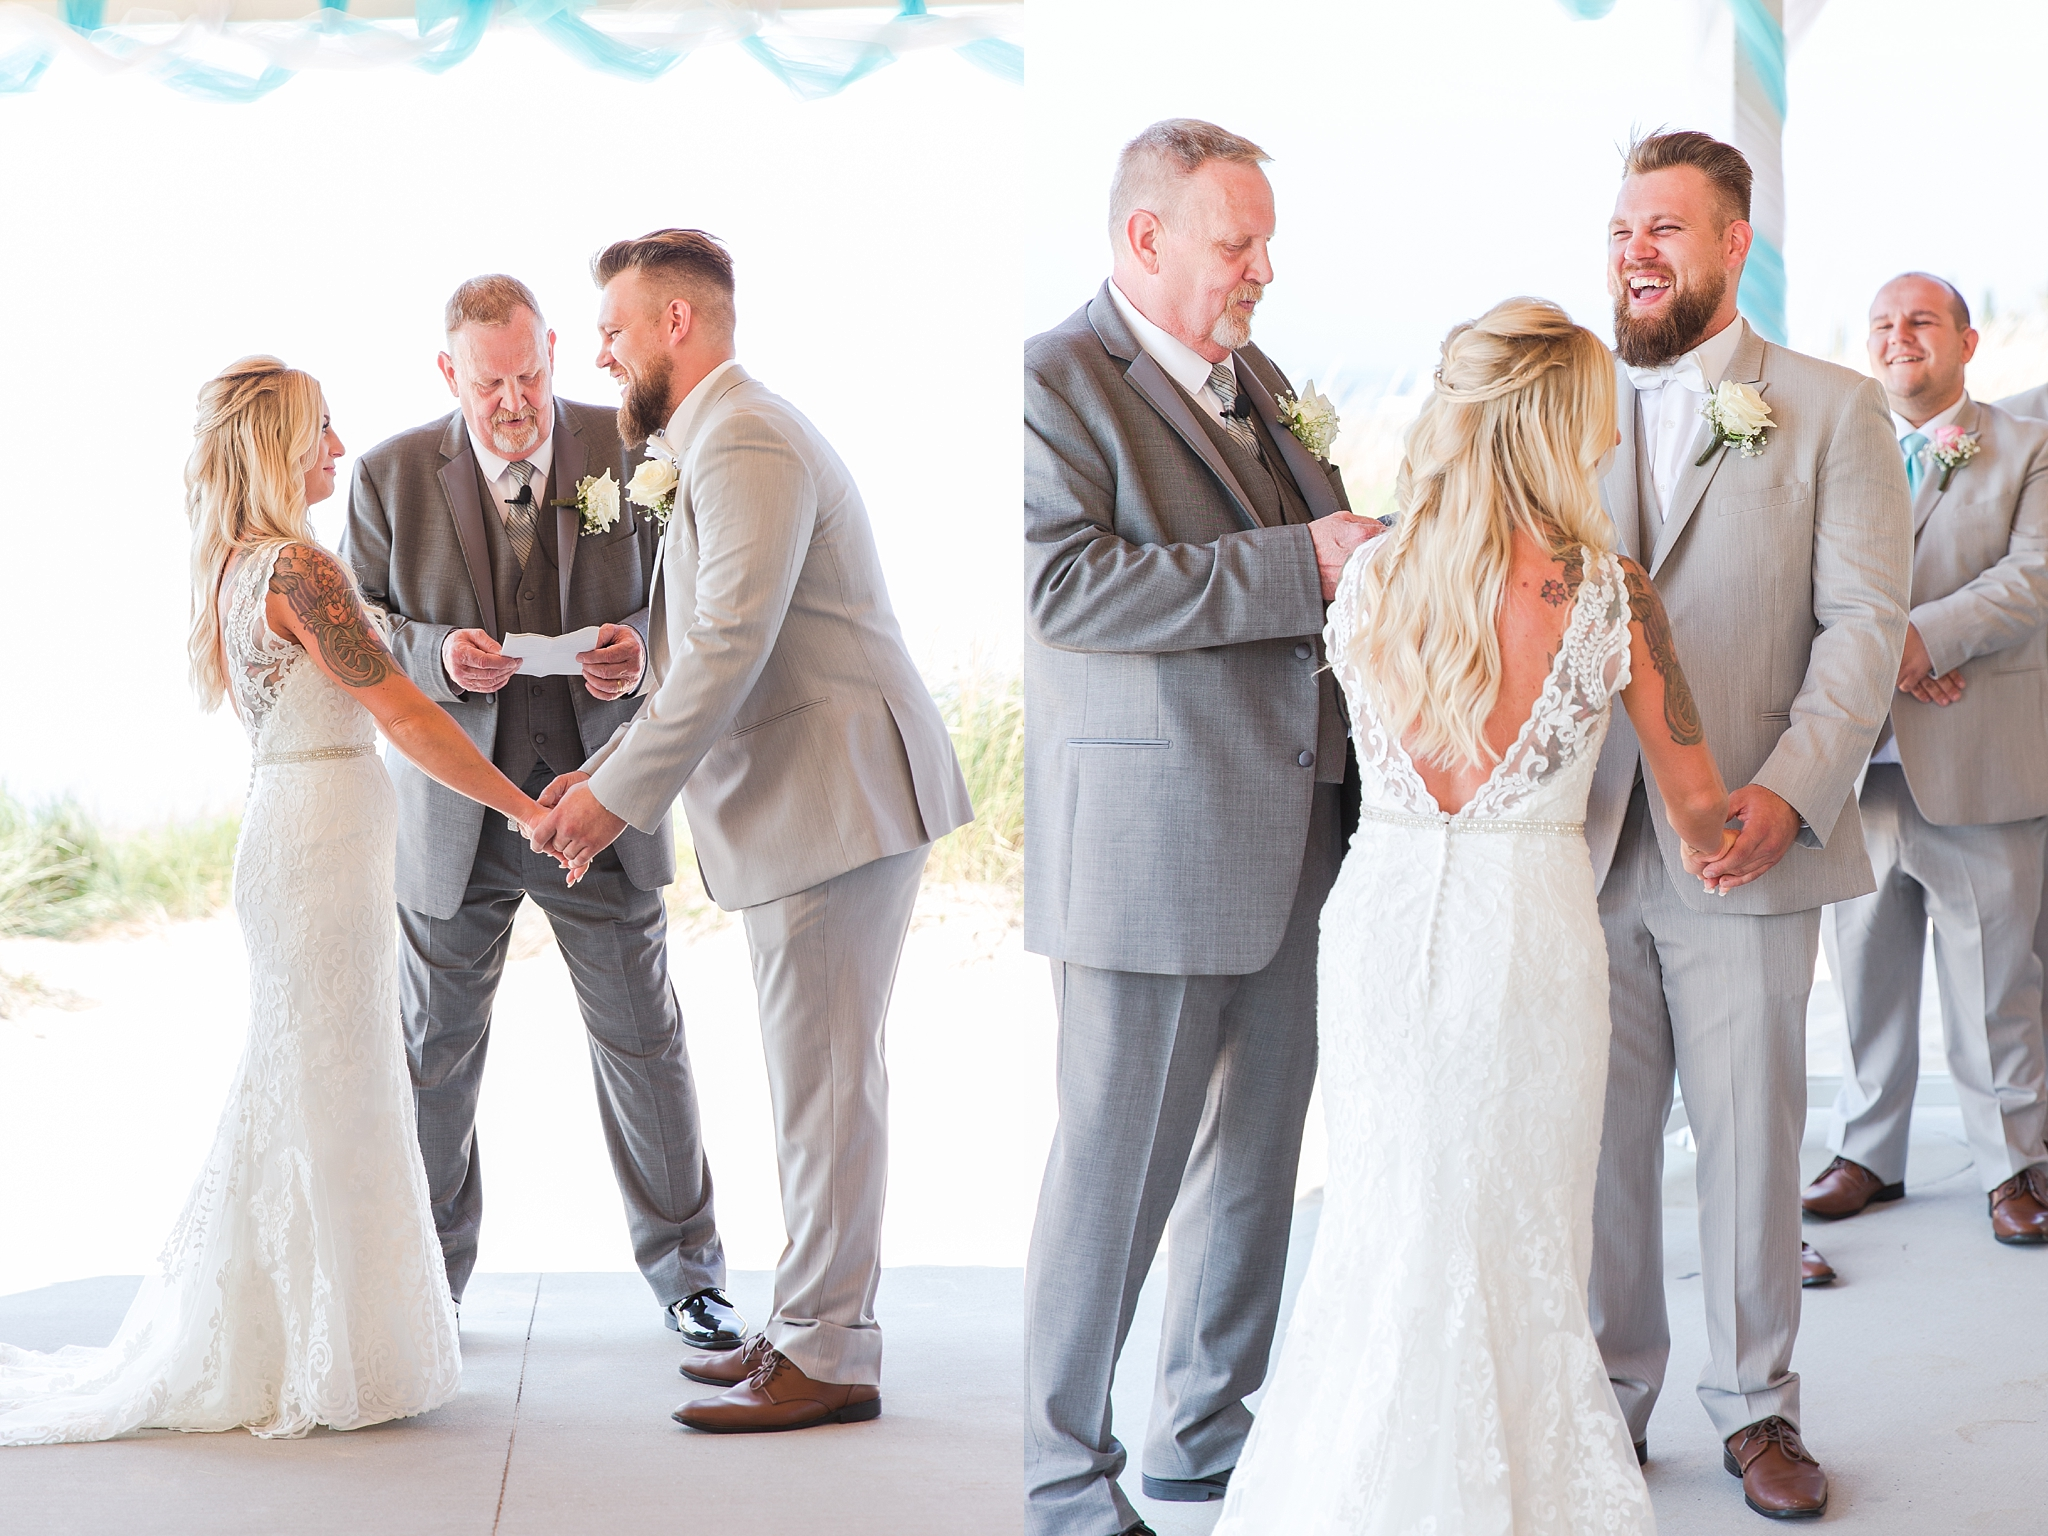 romantic-artful-candid-wedding-photos-in-detroit-lansing-ann-arbor-northern-michigan-and-chicago-by-courtney-carolyn-photography_0045.jpg